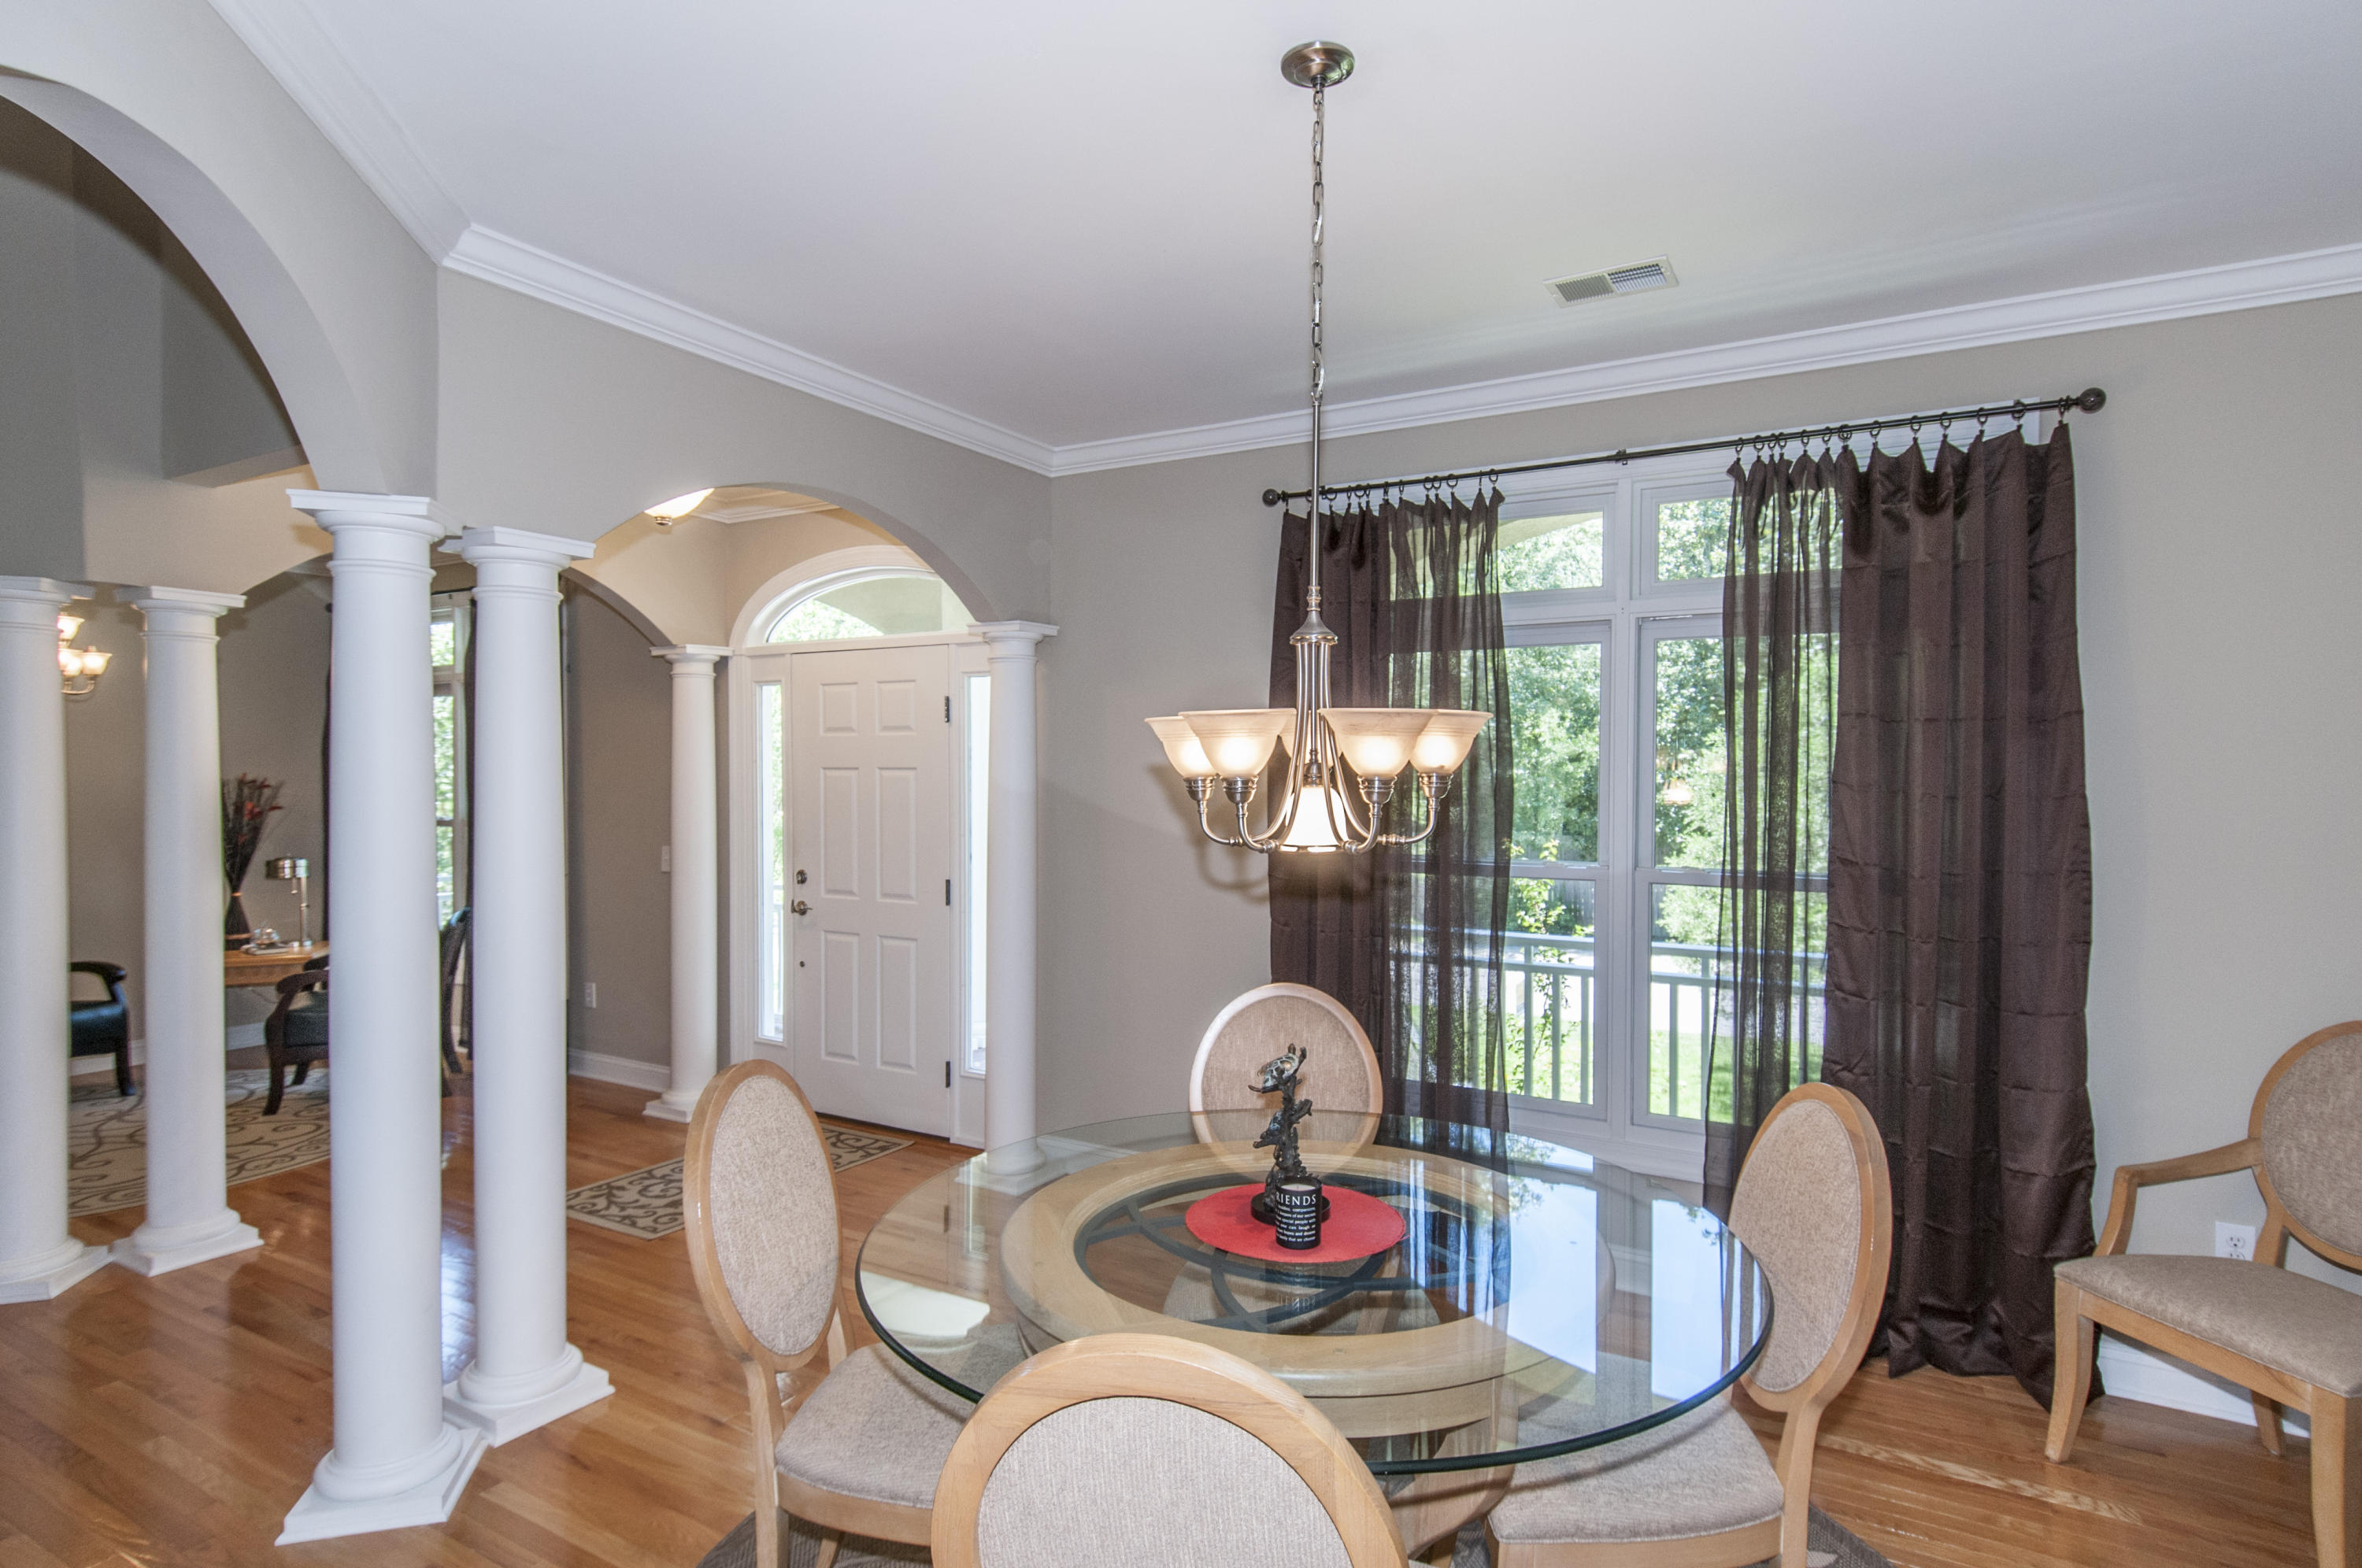 The Marshes at Rushland Landing Homes For Sale - 3022 Rushland Mews, Johns Island, SC - 11